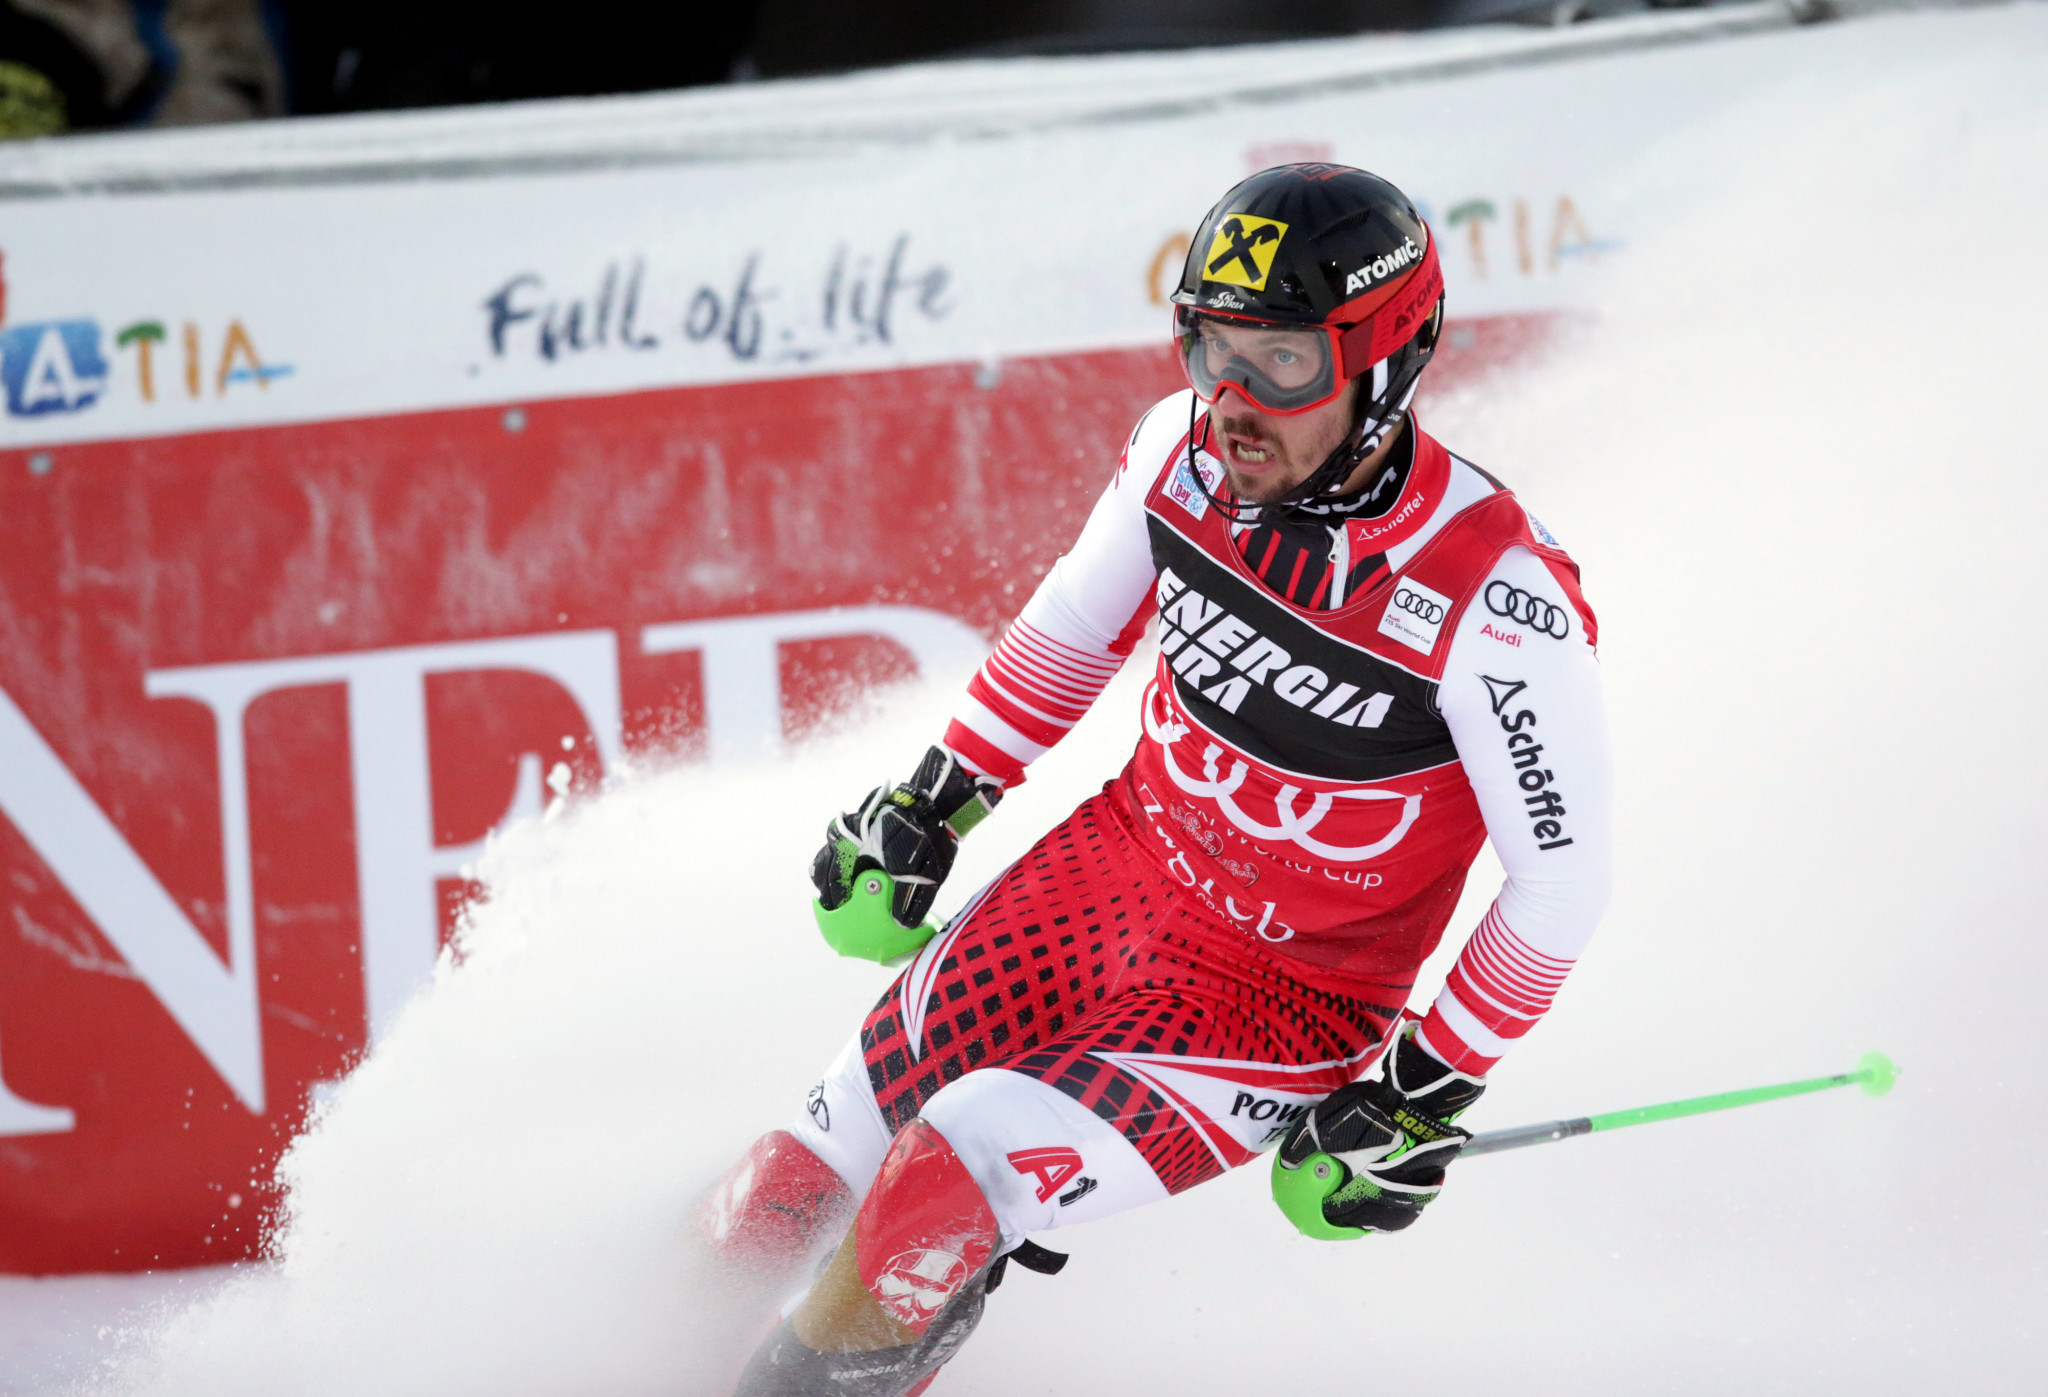 Austria's Marcel Hirscher will be looking to increase his advantage in the FIS Alpine Skiing World Cup standings when Adelboden in Switzerland plays host to the tour's latest stop this weekend ©Getty Images